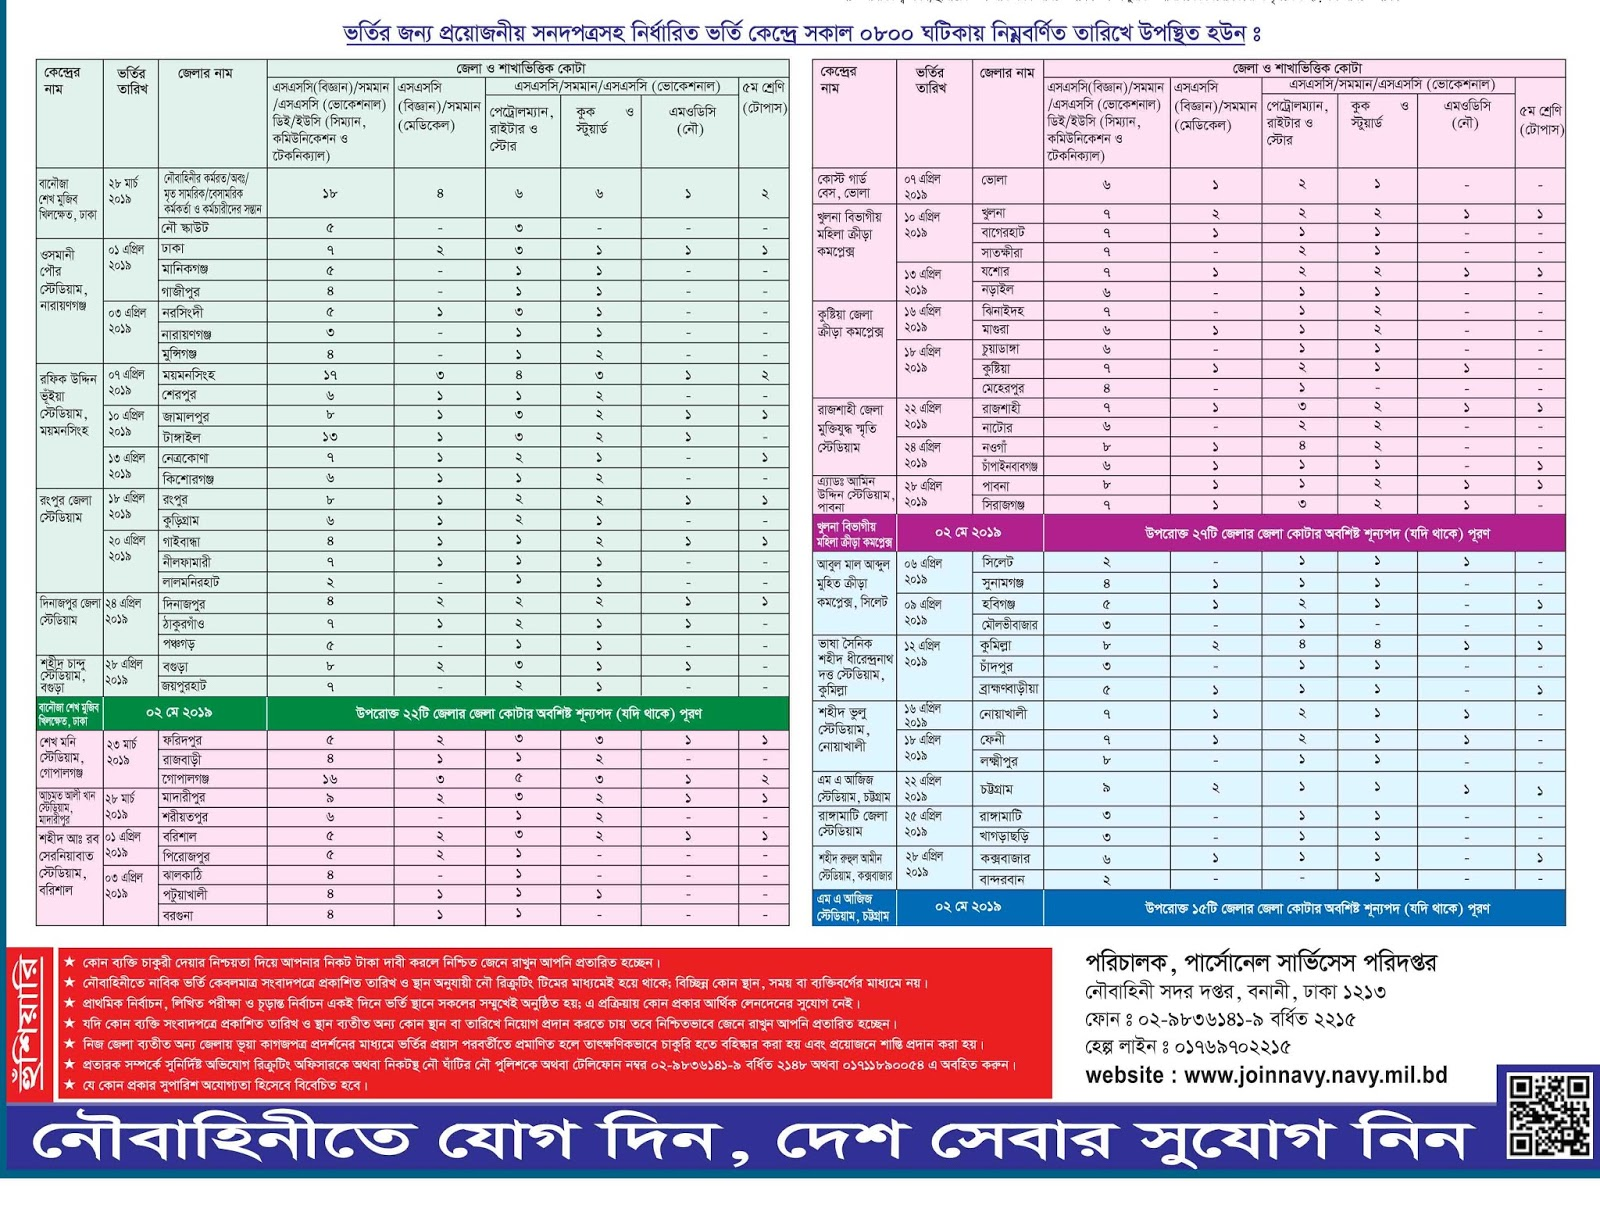 Bangladesh Navy Sailor and MODC (Navy) Recruitment Circular 2019